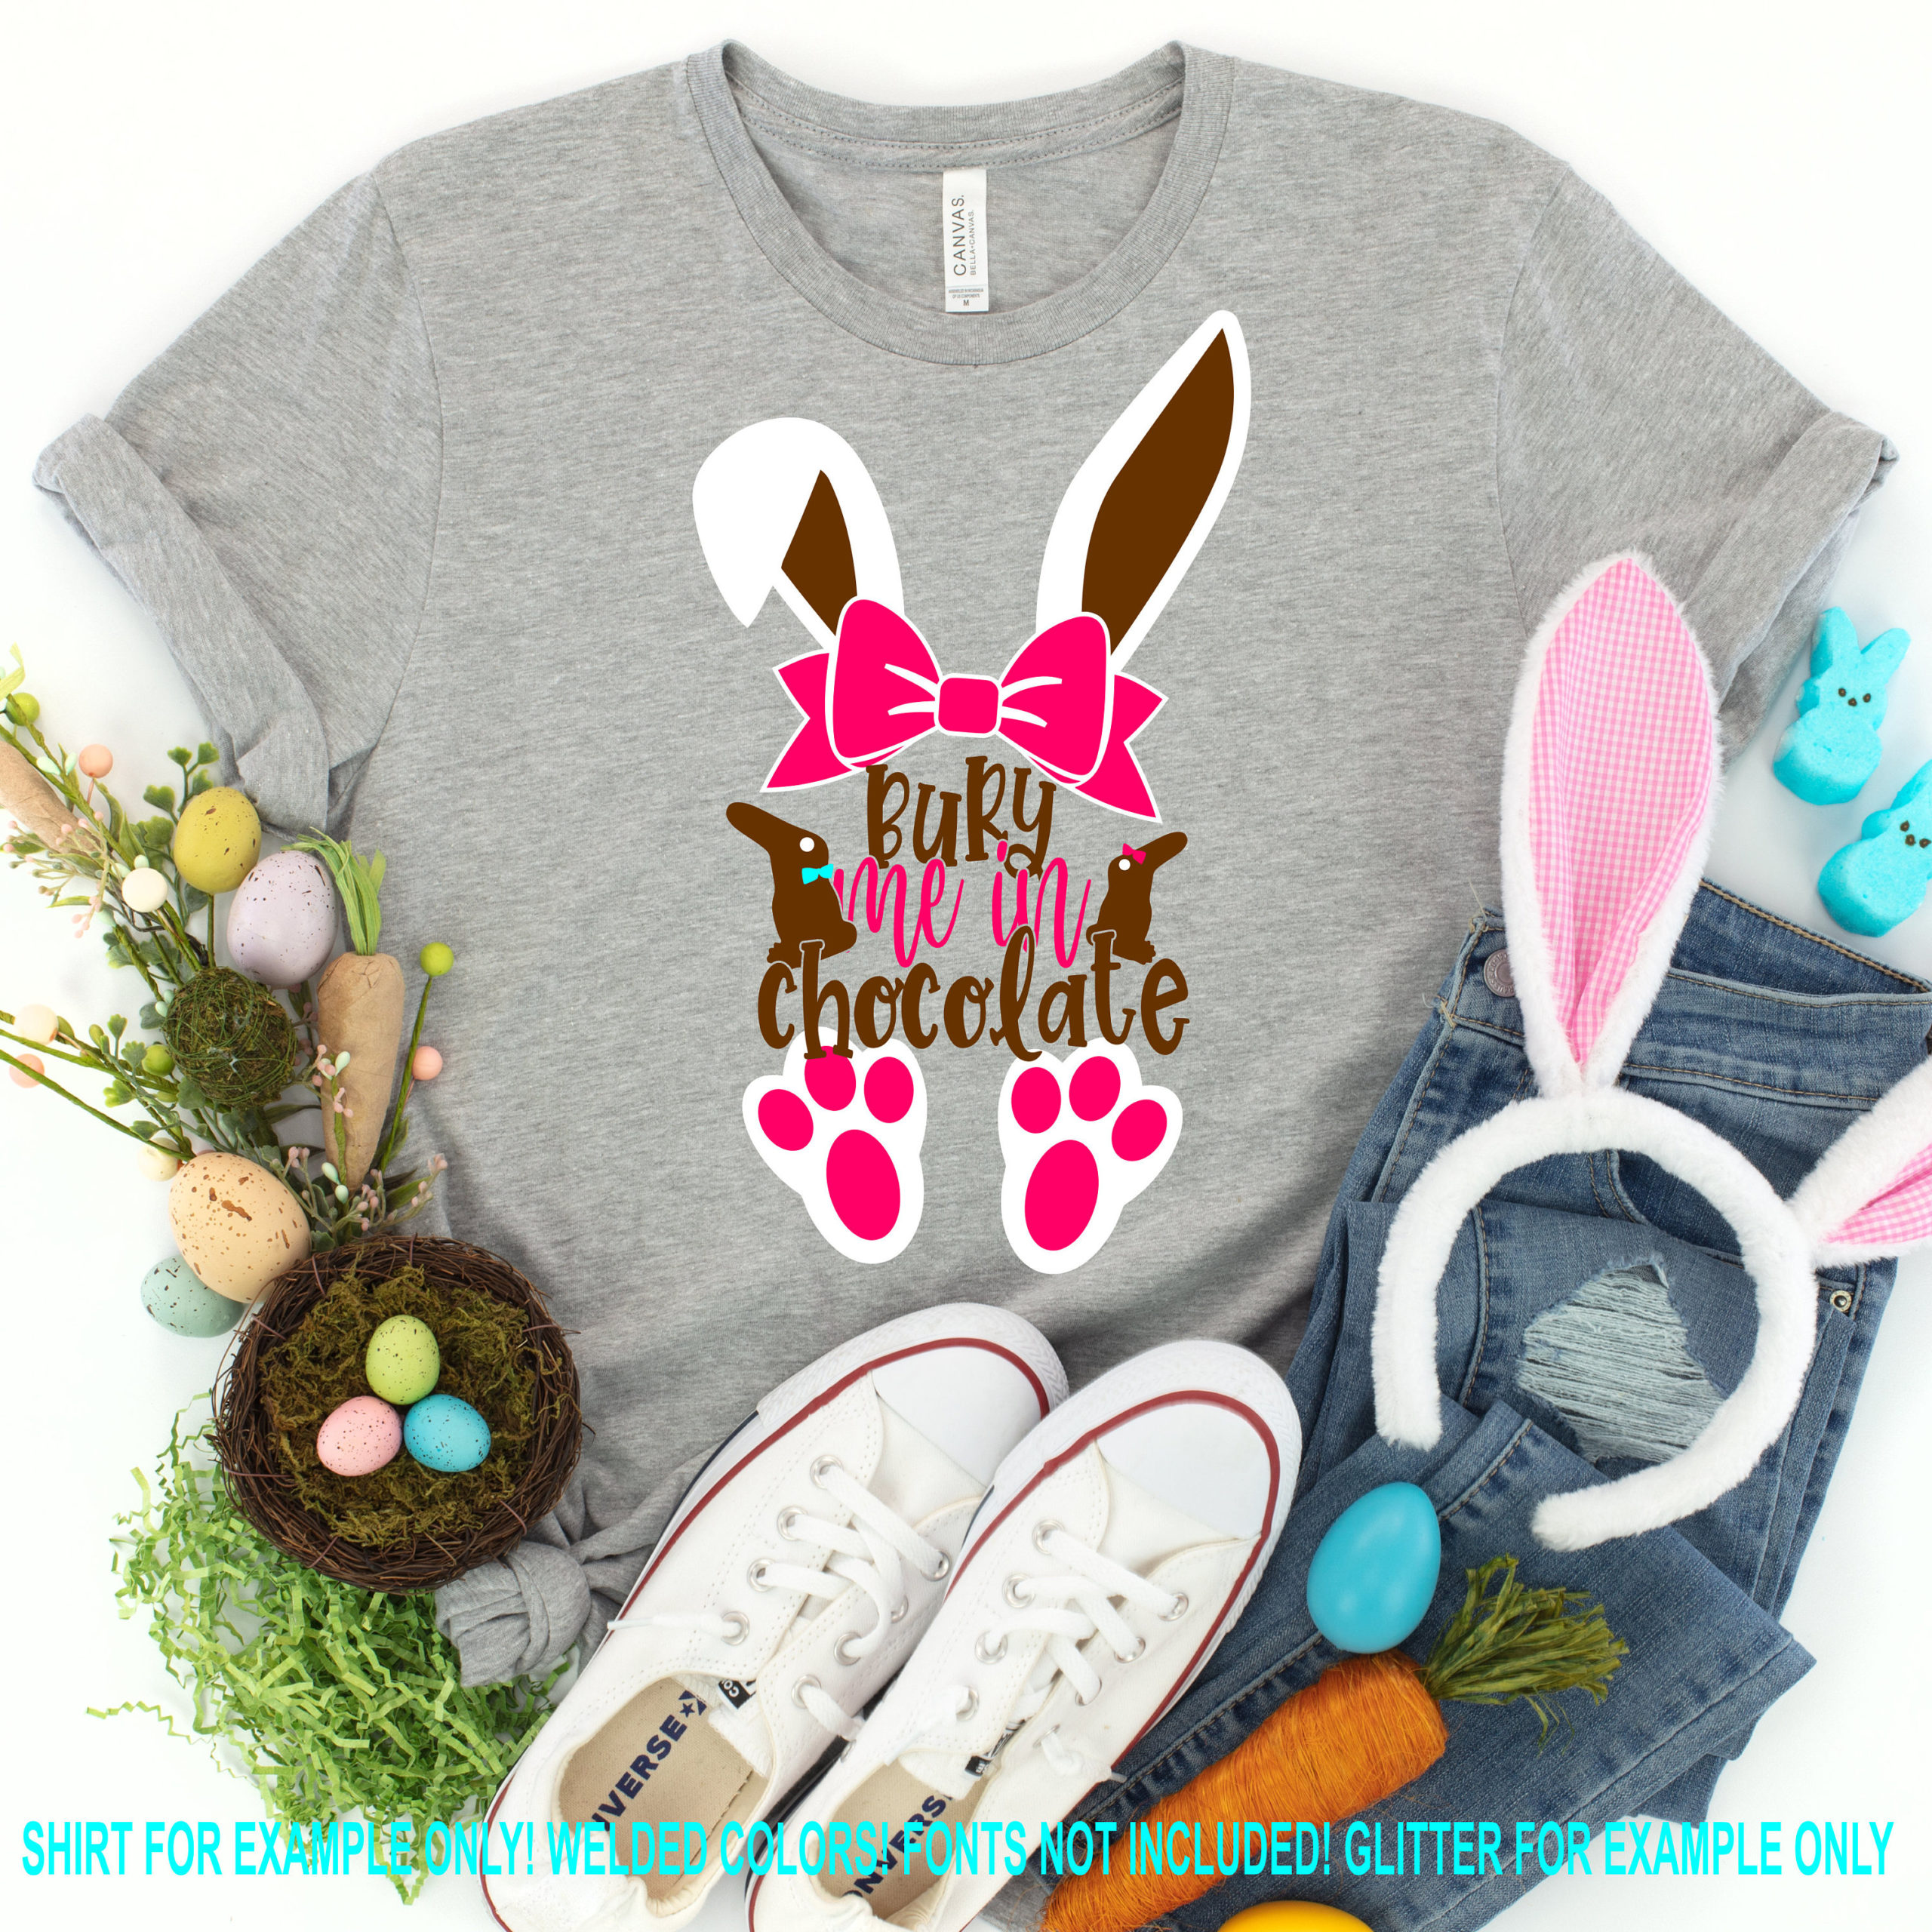 Easter-svg-bury-me-in-chocolate-svg-chocolate-svg-easter-jesus-svg-easter-svg-design-easter-cut-file-easter-cricut-svg-cricut-60513a37